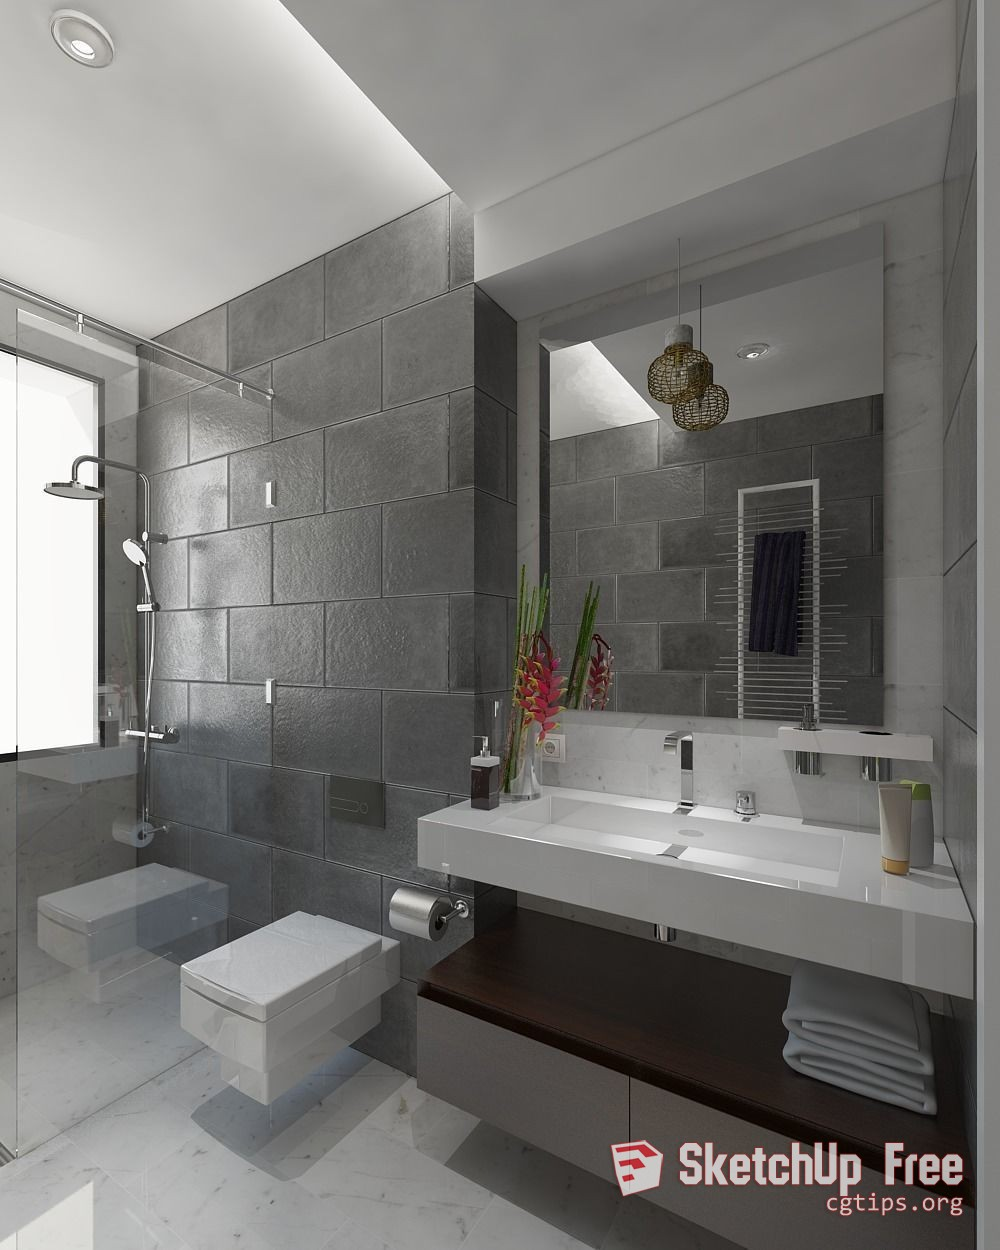 1694 Bathroom Sketchup Model Free Download